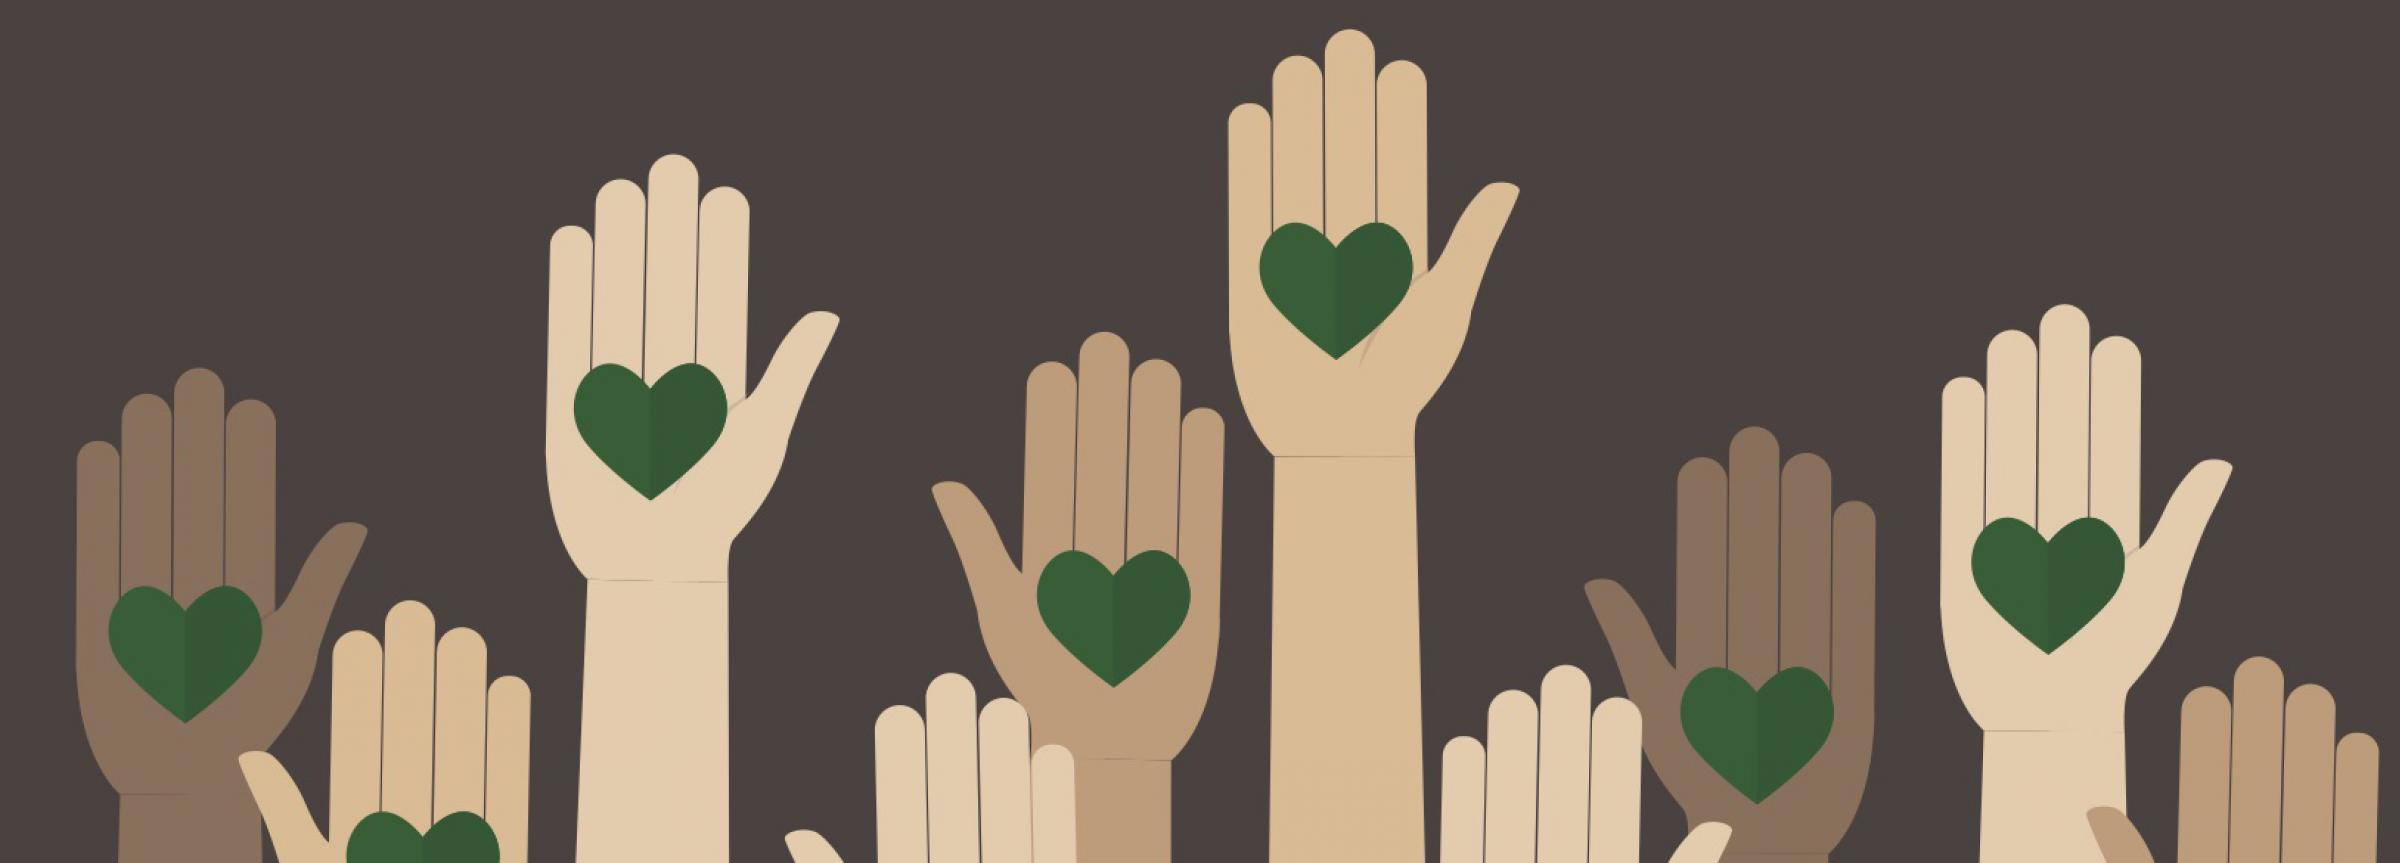 Hands holding green hearts